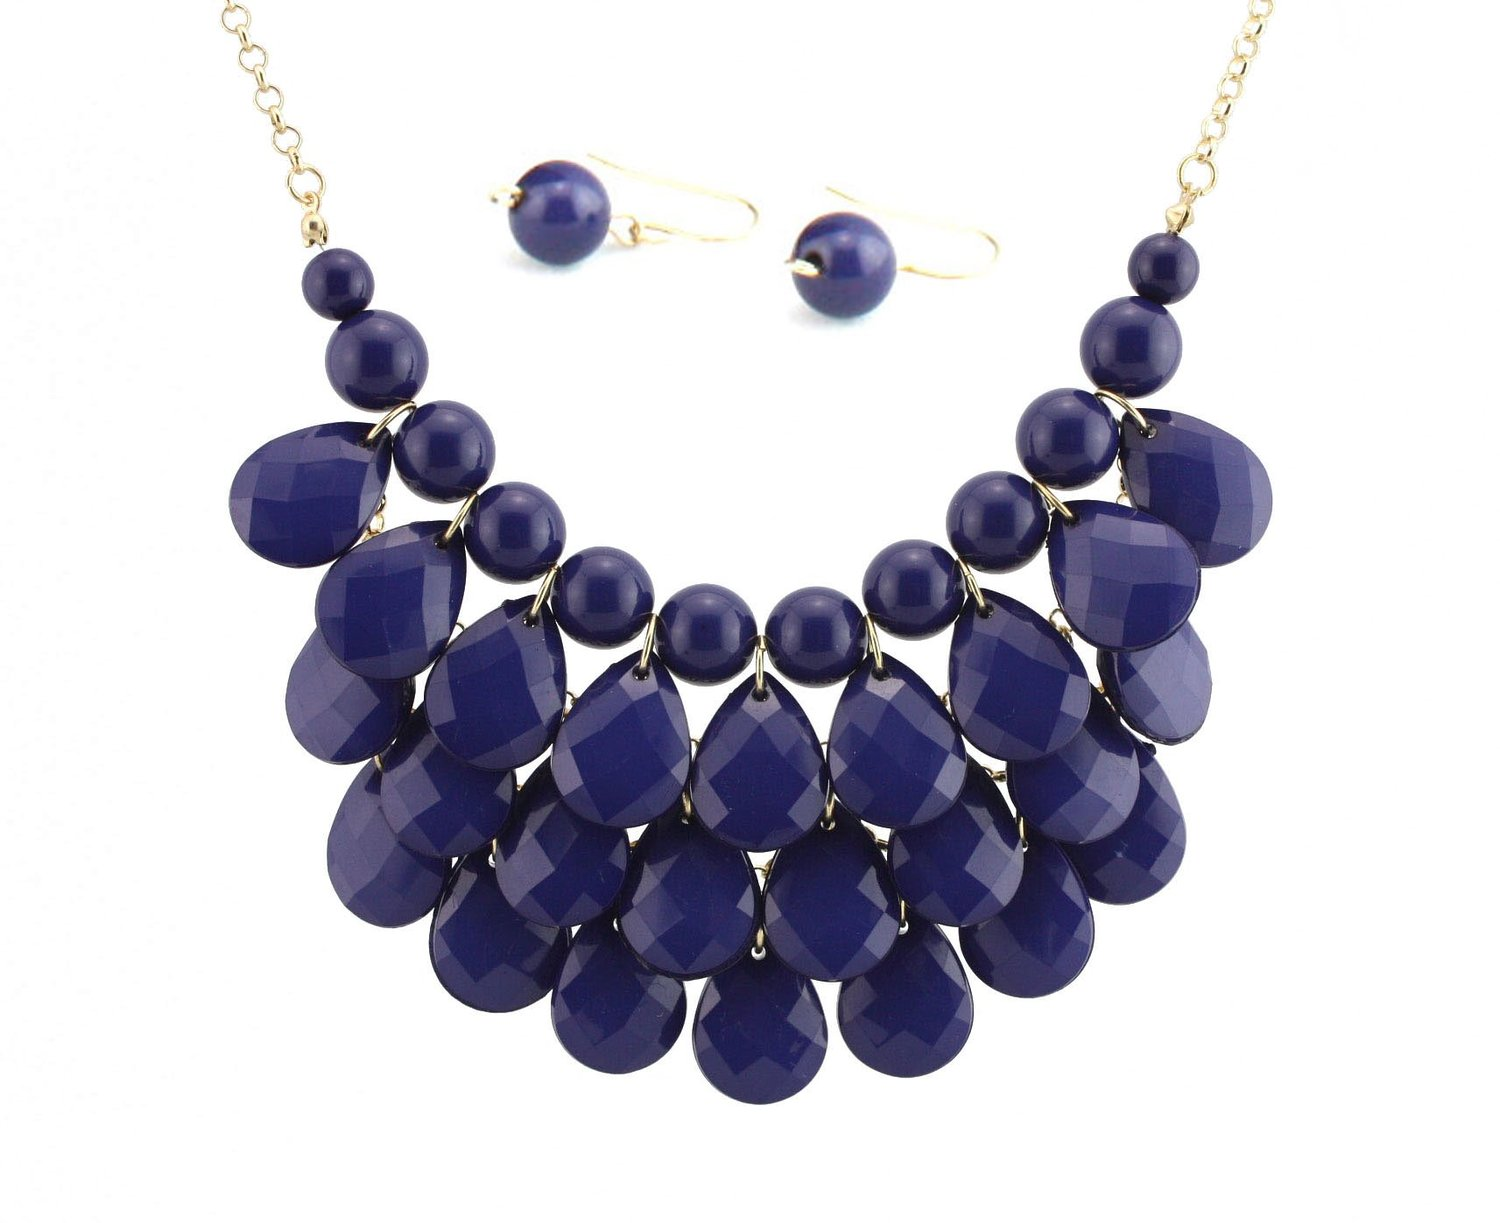 Amazon.com: Bib Bubble Statement Necklace & Earrings Jewelry Set Inspired. - Fashion Jewelry - Navy Blue: Necklaces Gold For Women Blue: Jewelry